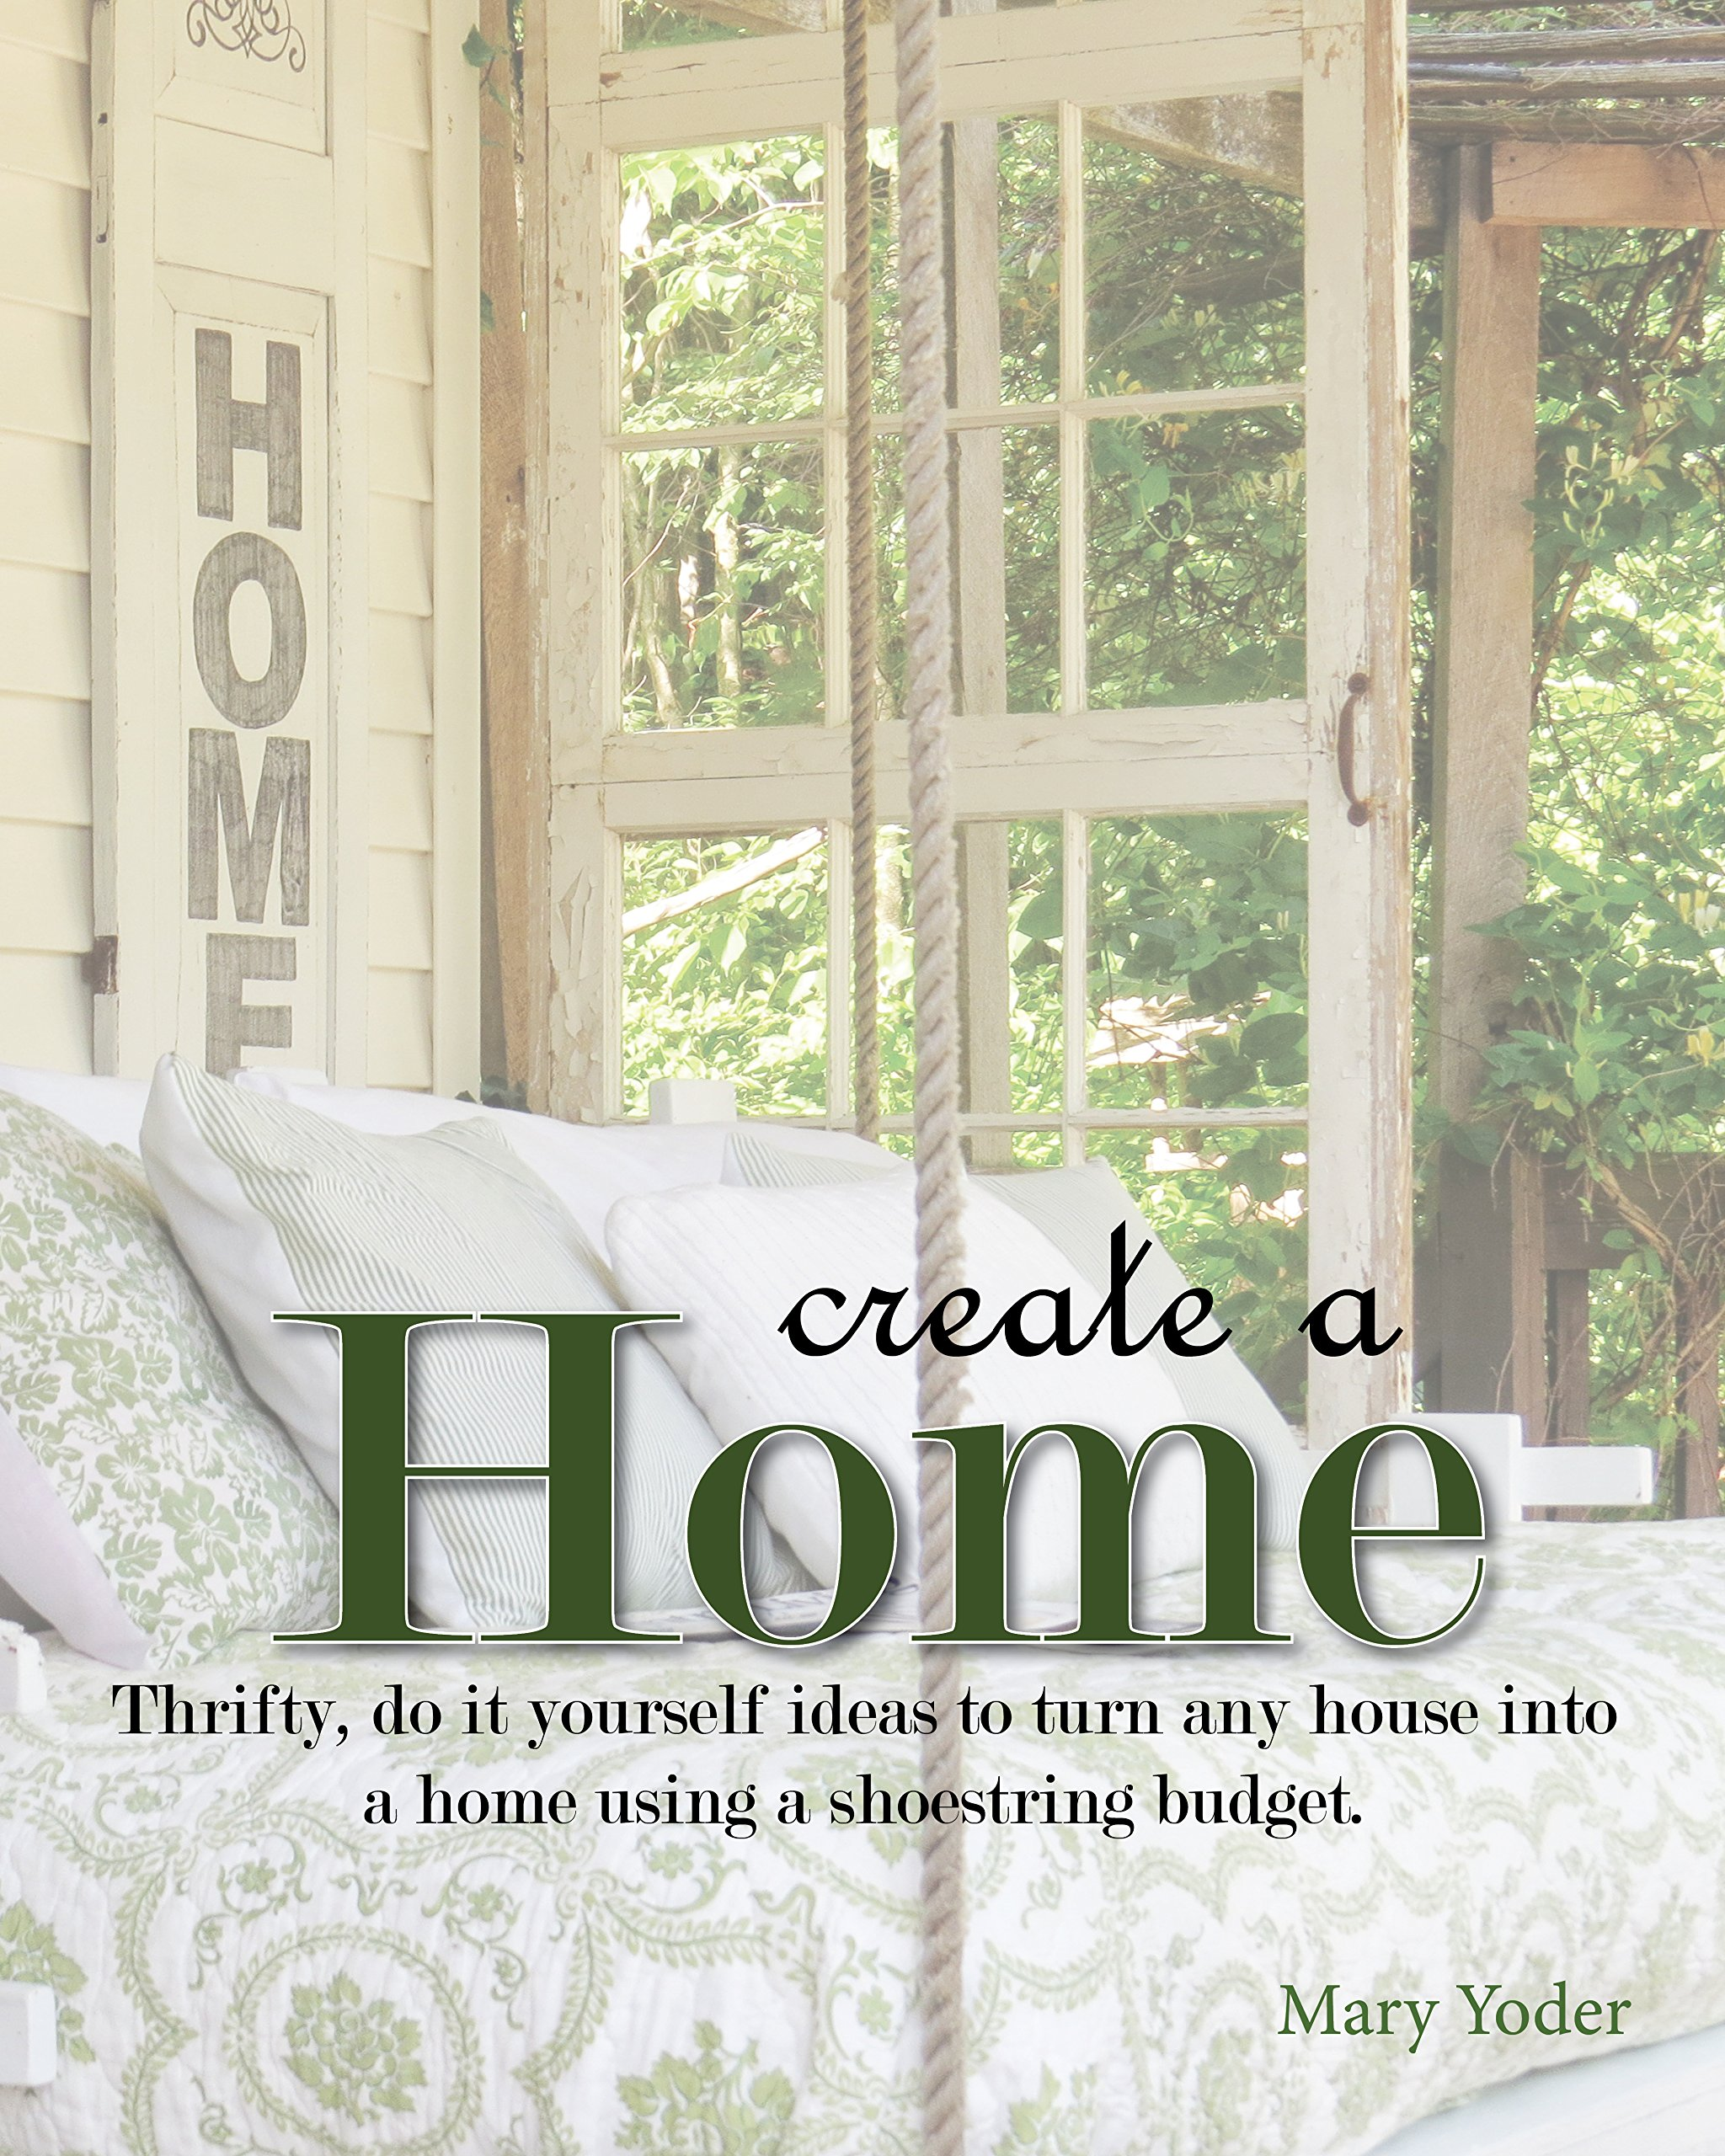 Create a home: Thrifty, Do it yourself ideas to turn any house into ...